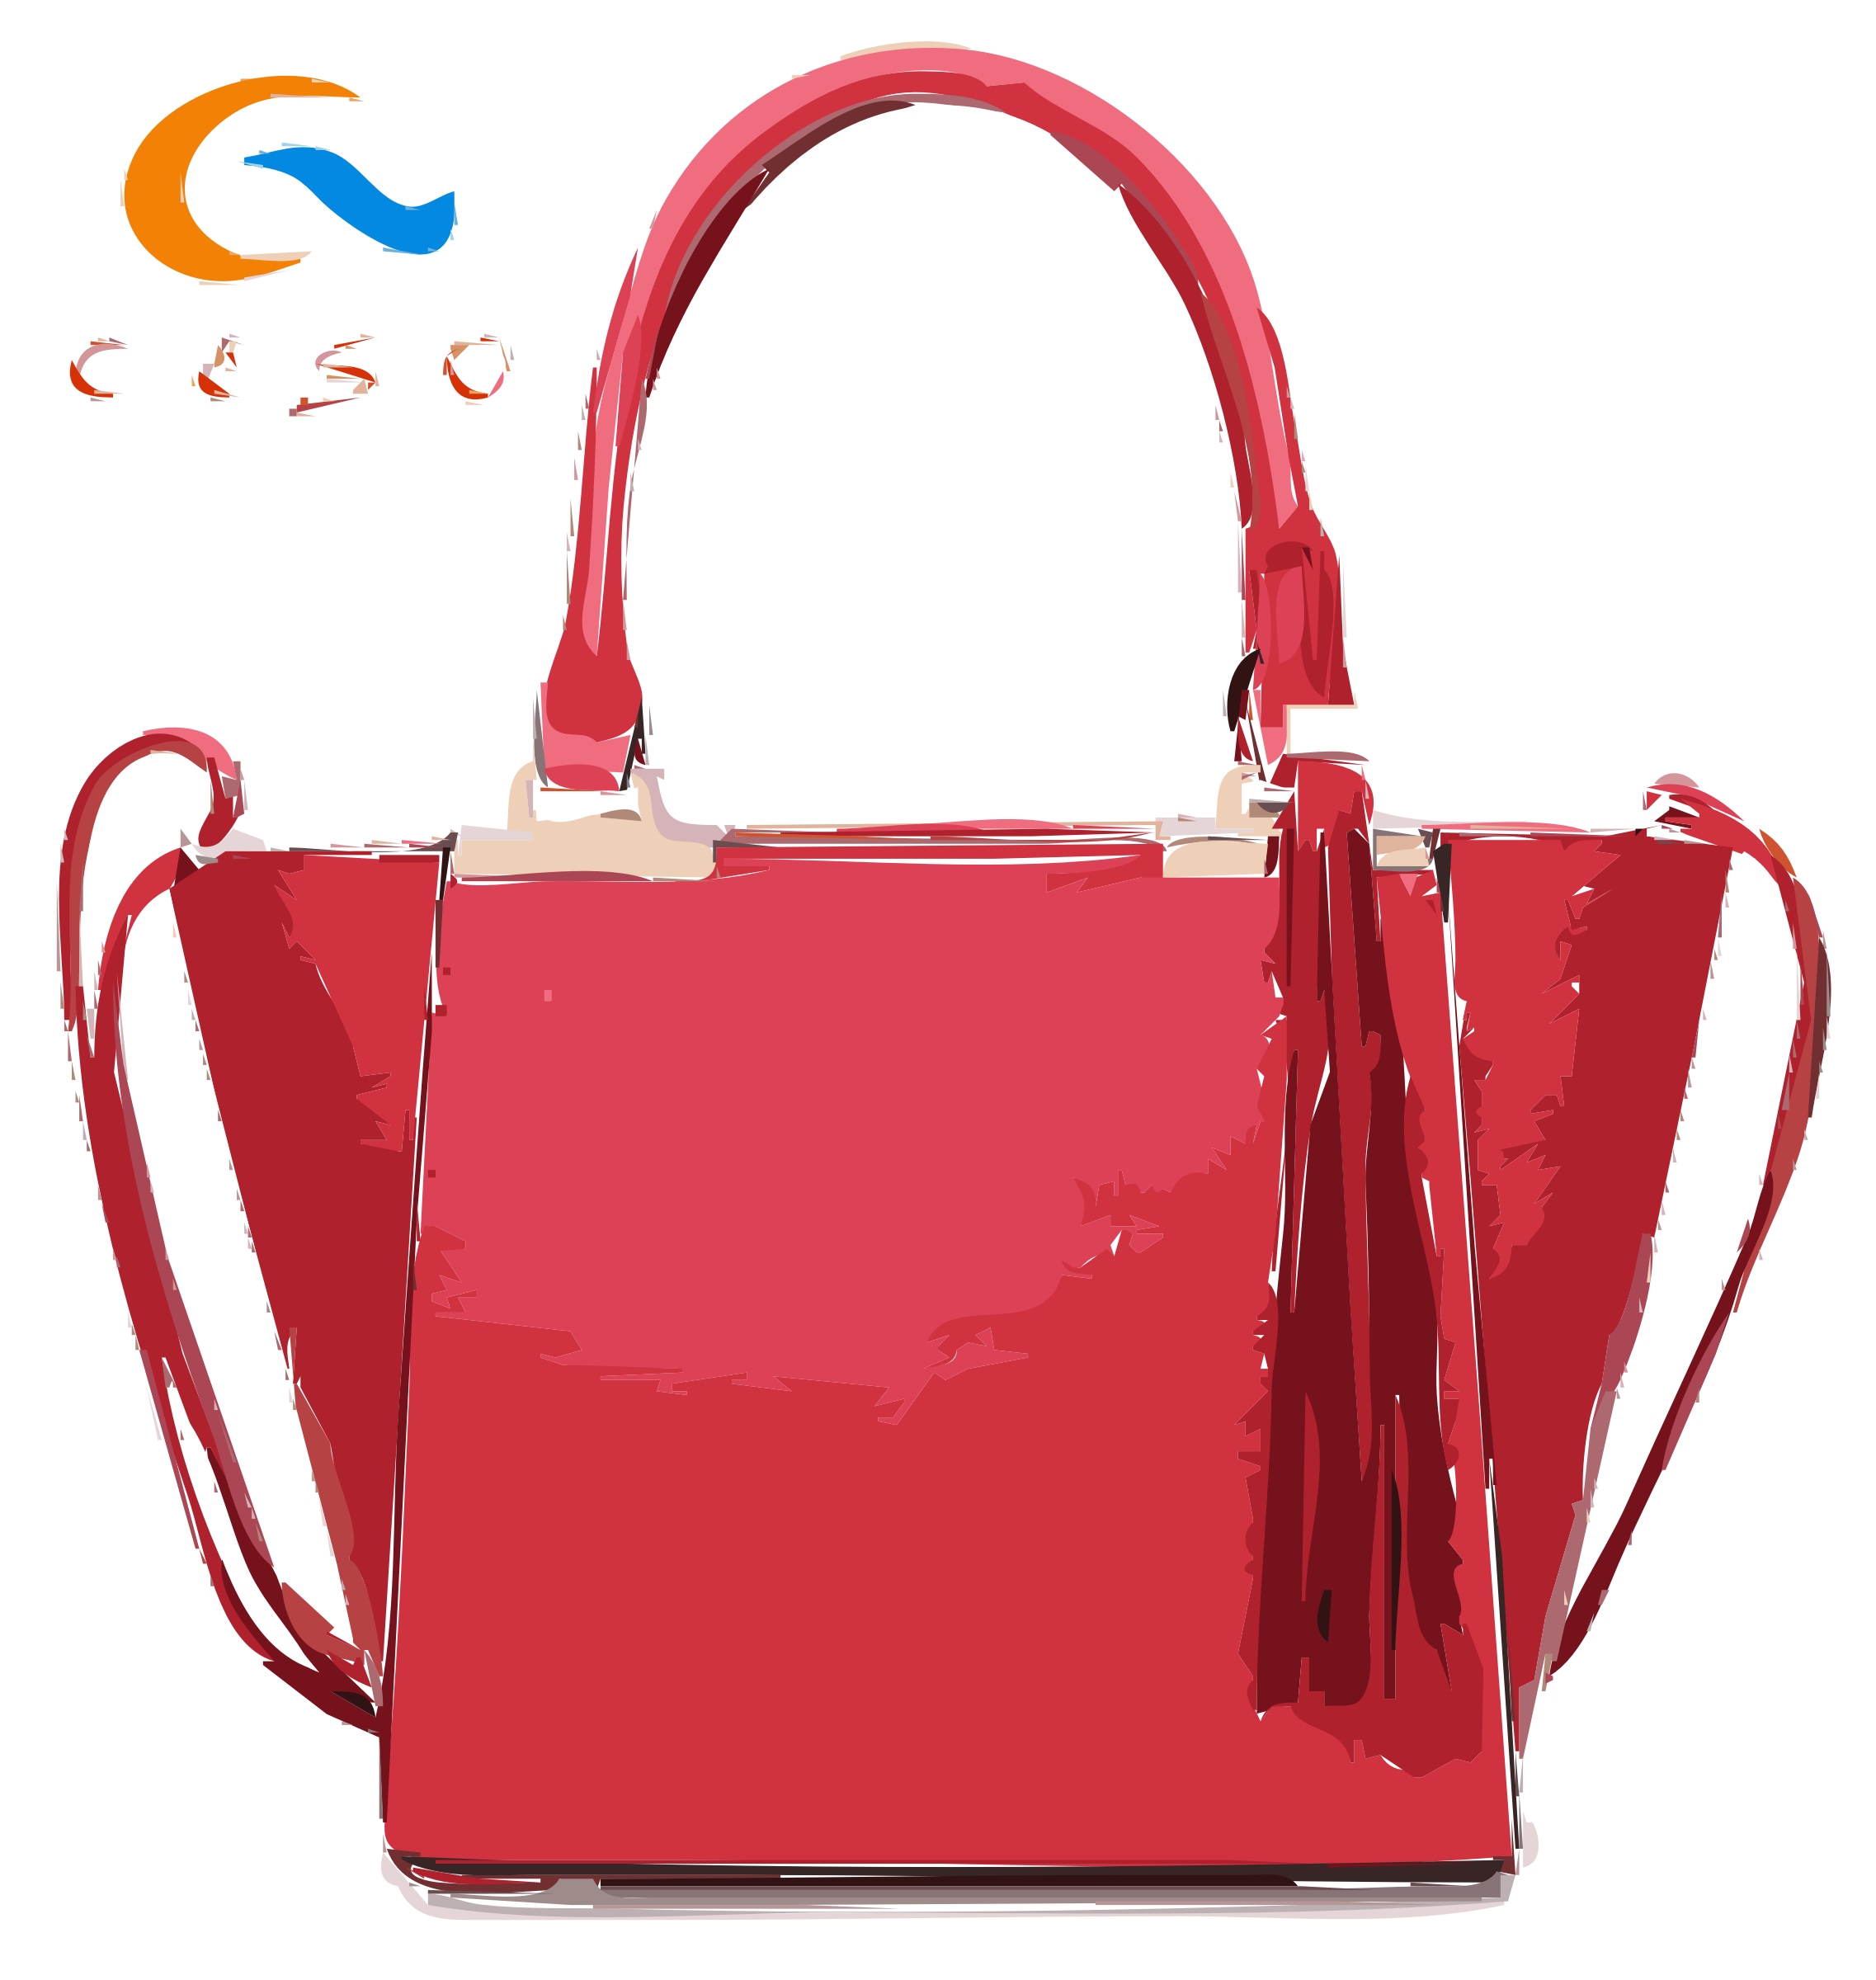 Pink Bag with Tassles and Logo by openclipart